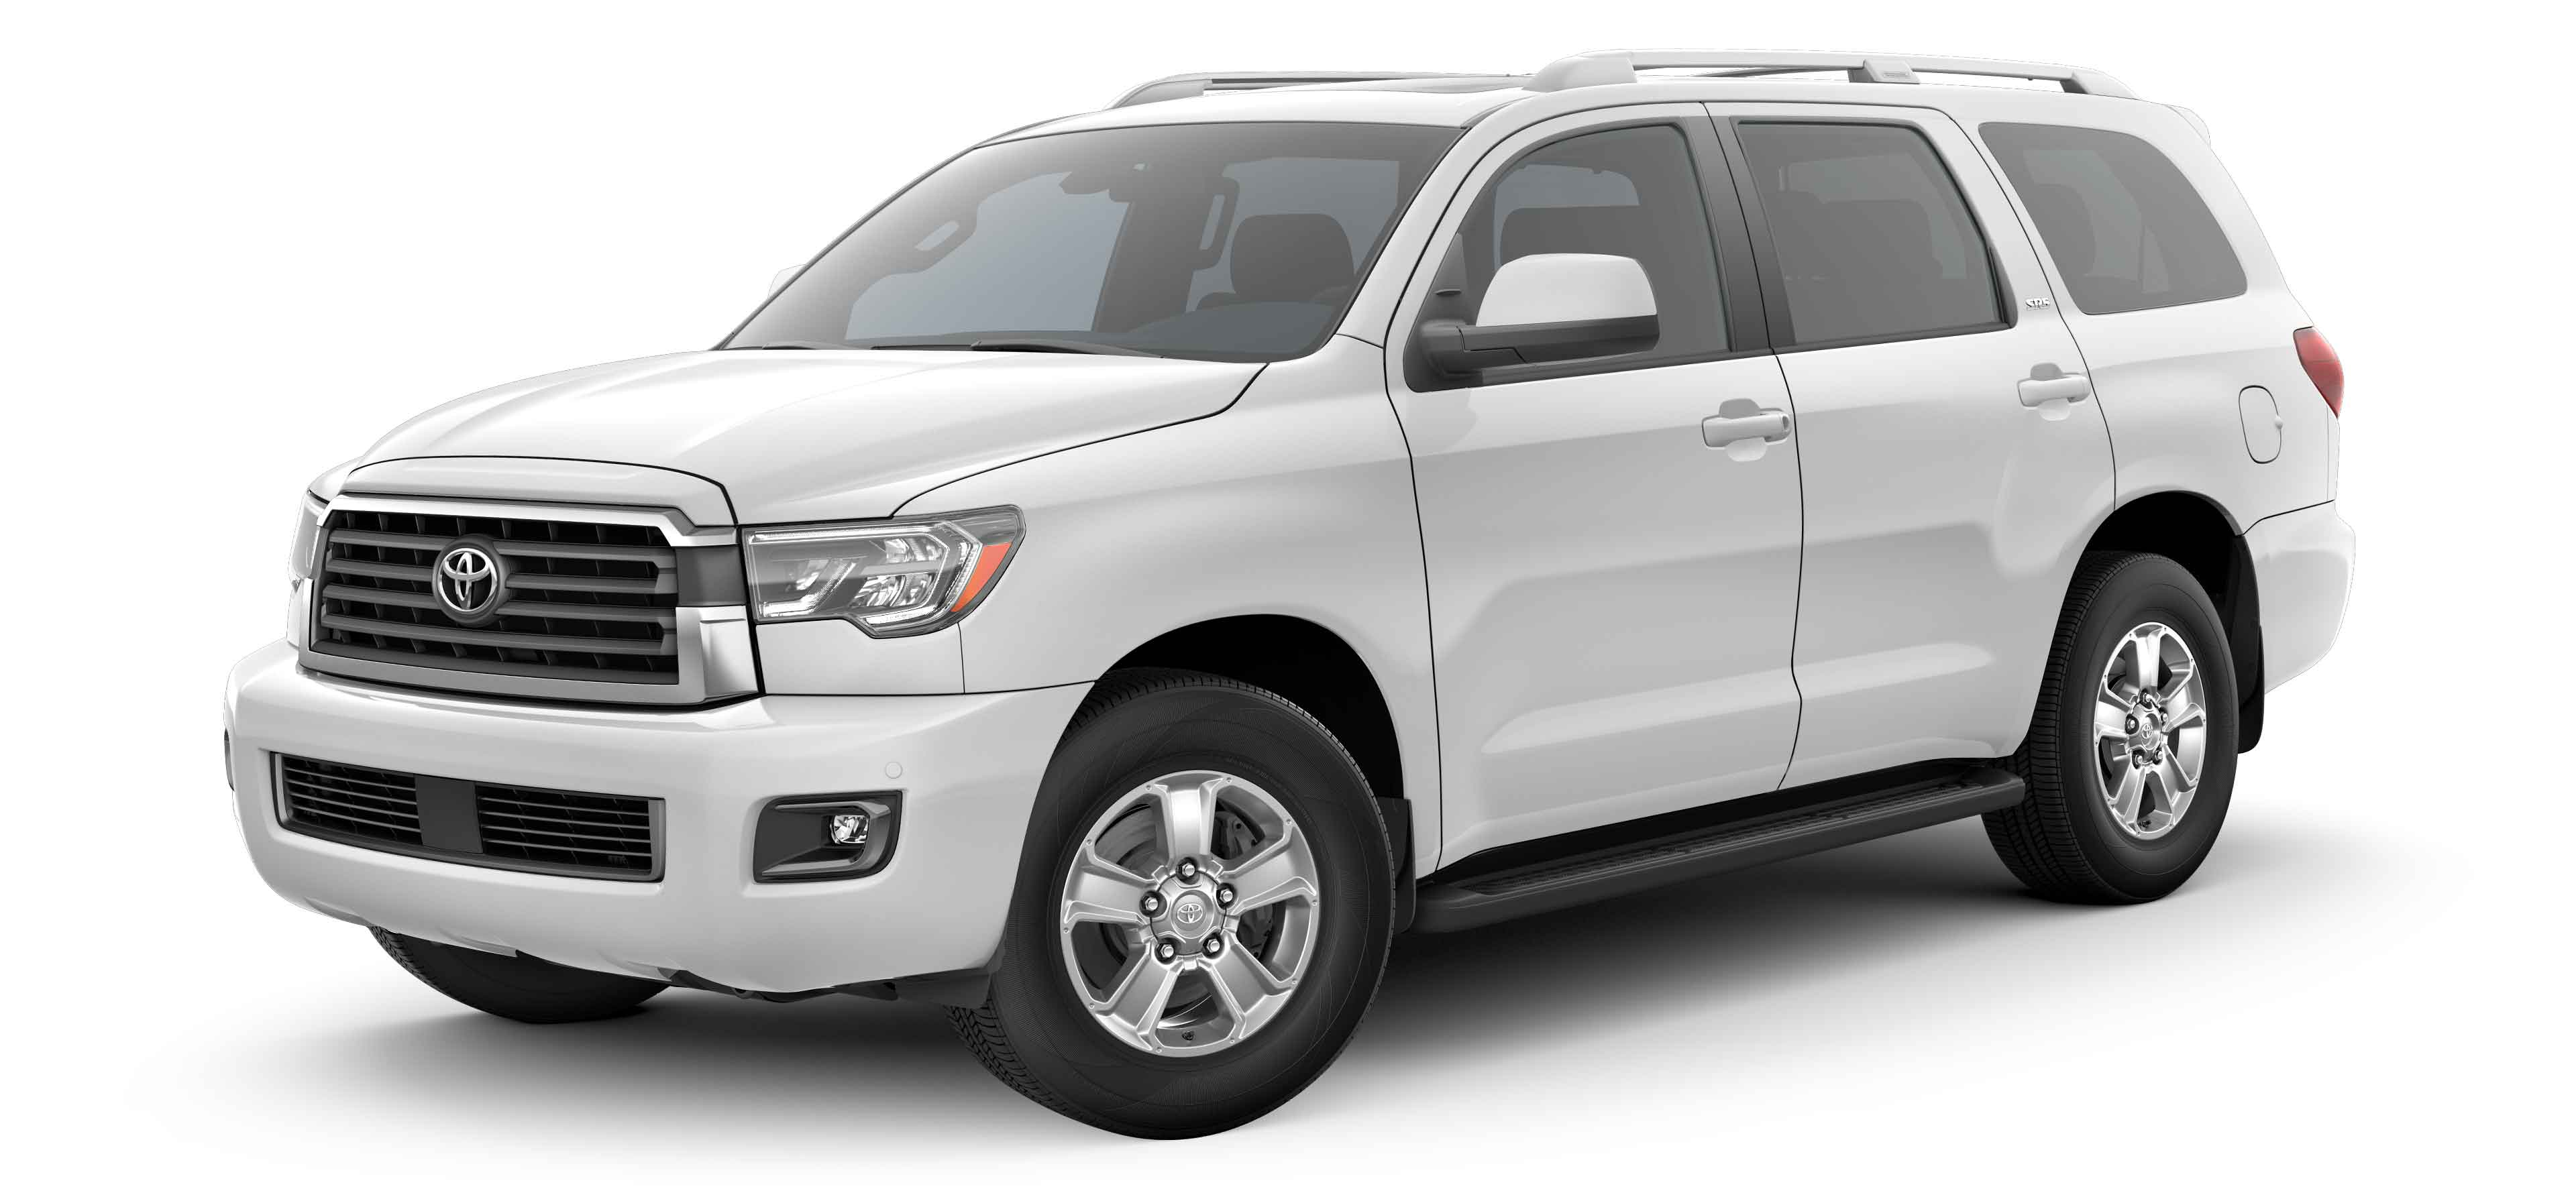 sequoia toyota review cars top reviews speed